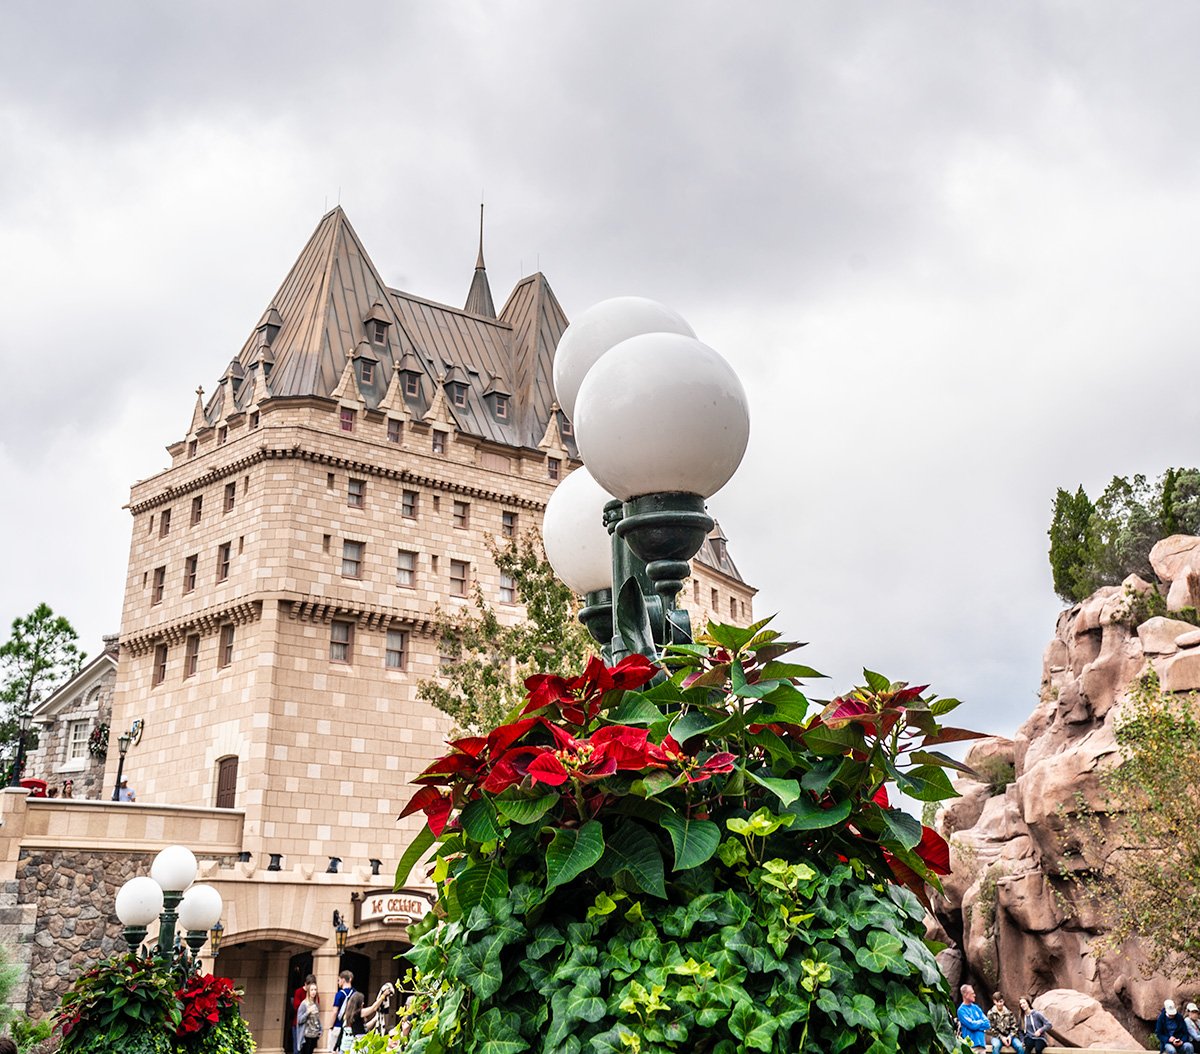 Canada-at-Christmas-Disneys-Epcot